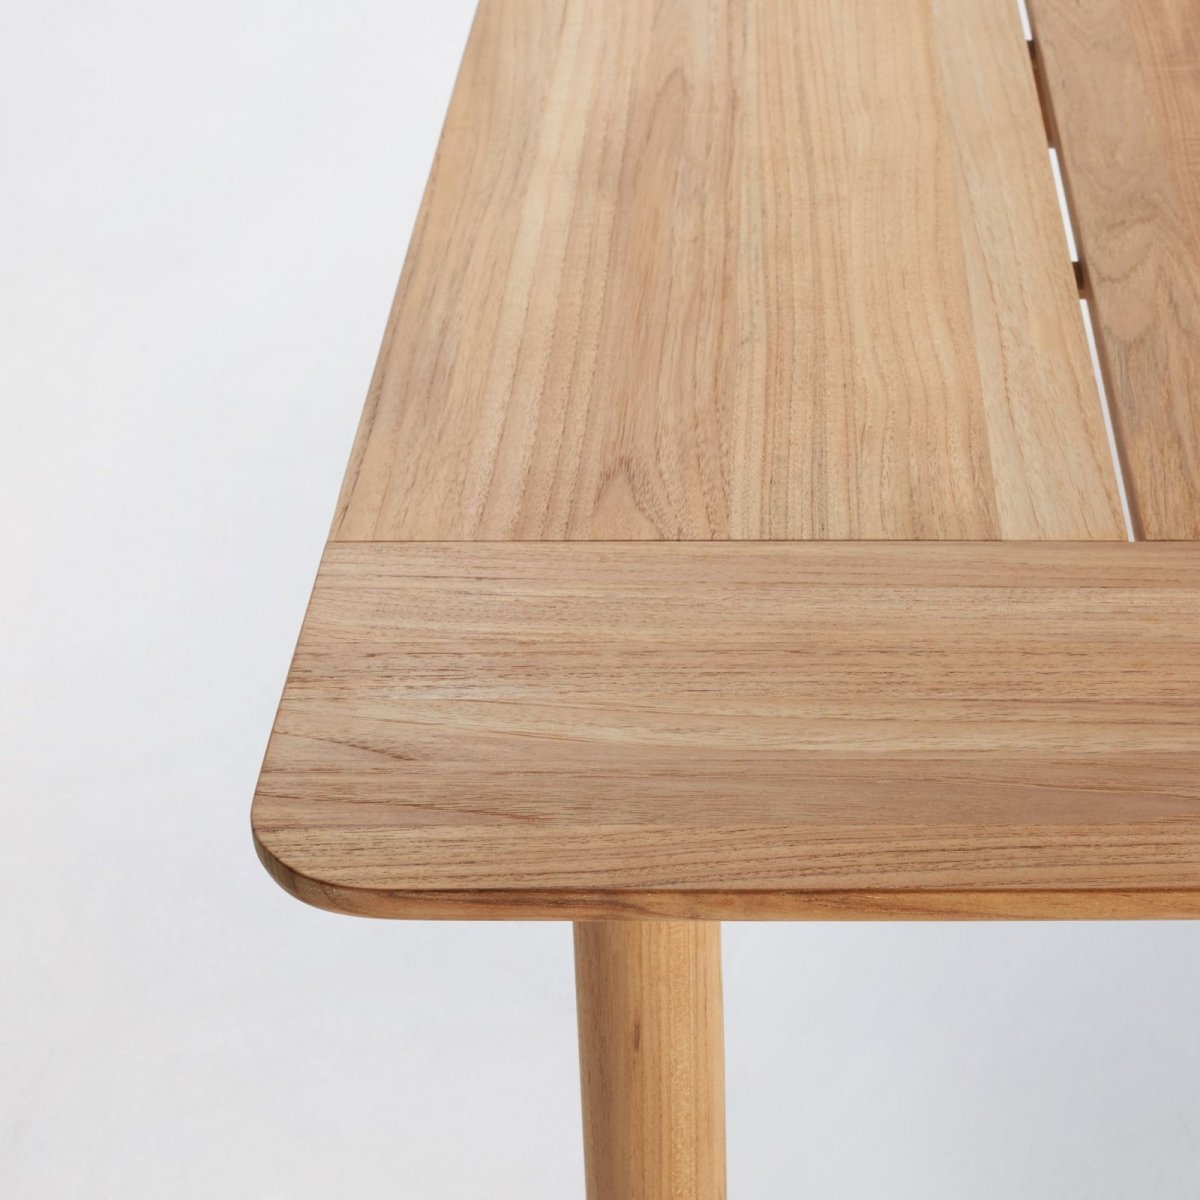 Terassi Dining Table, detail.